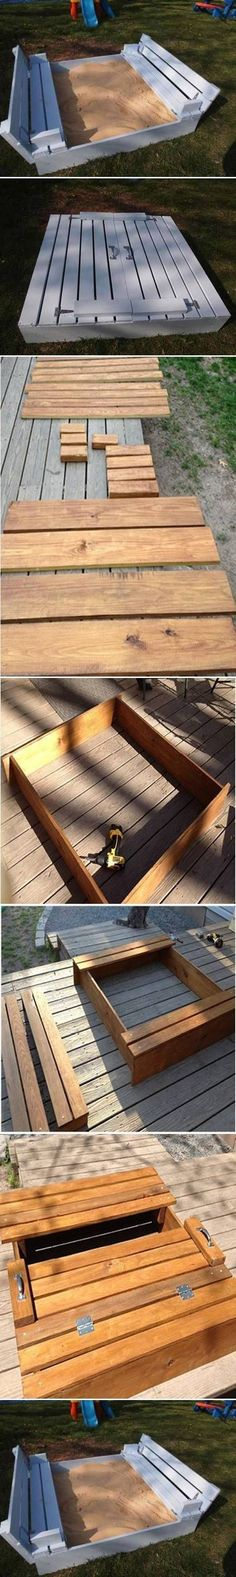 Sandkiste aus alten Paletten - DIY - 30 Amazing Uses For Old Pallets Pallet Crafts, Pallet Projects, Home Projects, Wood Crafts, Projects To Try, Diy Crafts, Diy Pallet, Pallet Ideas, Diy Projects For Men